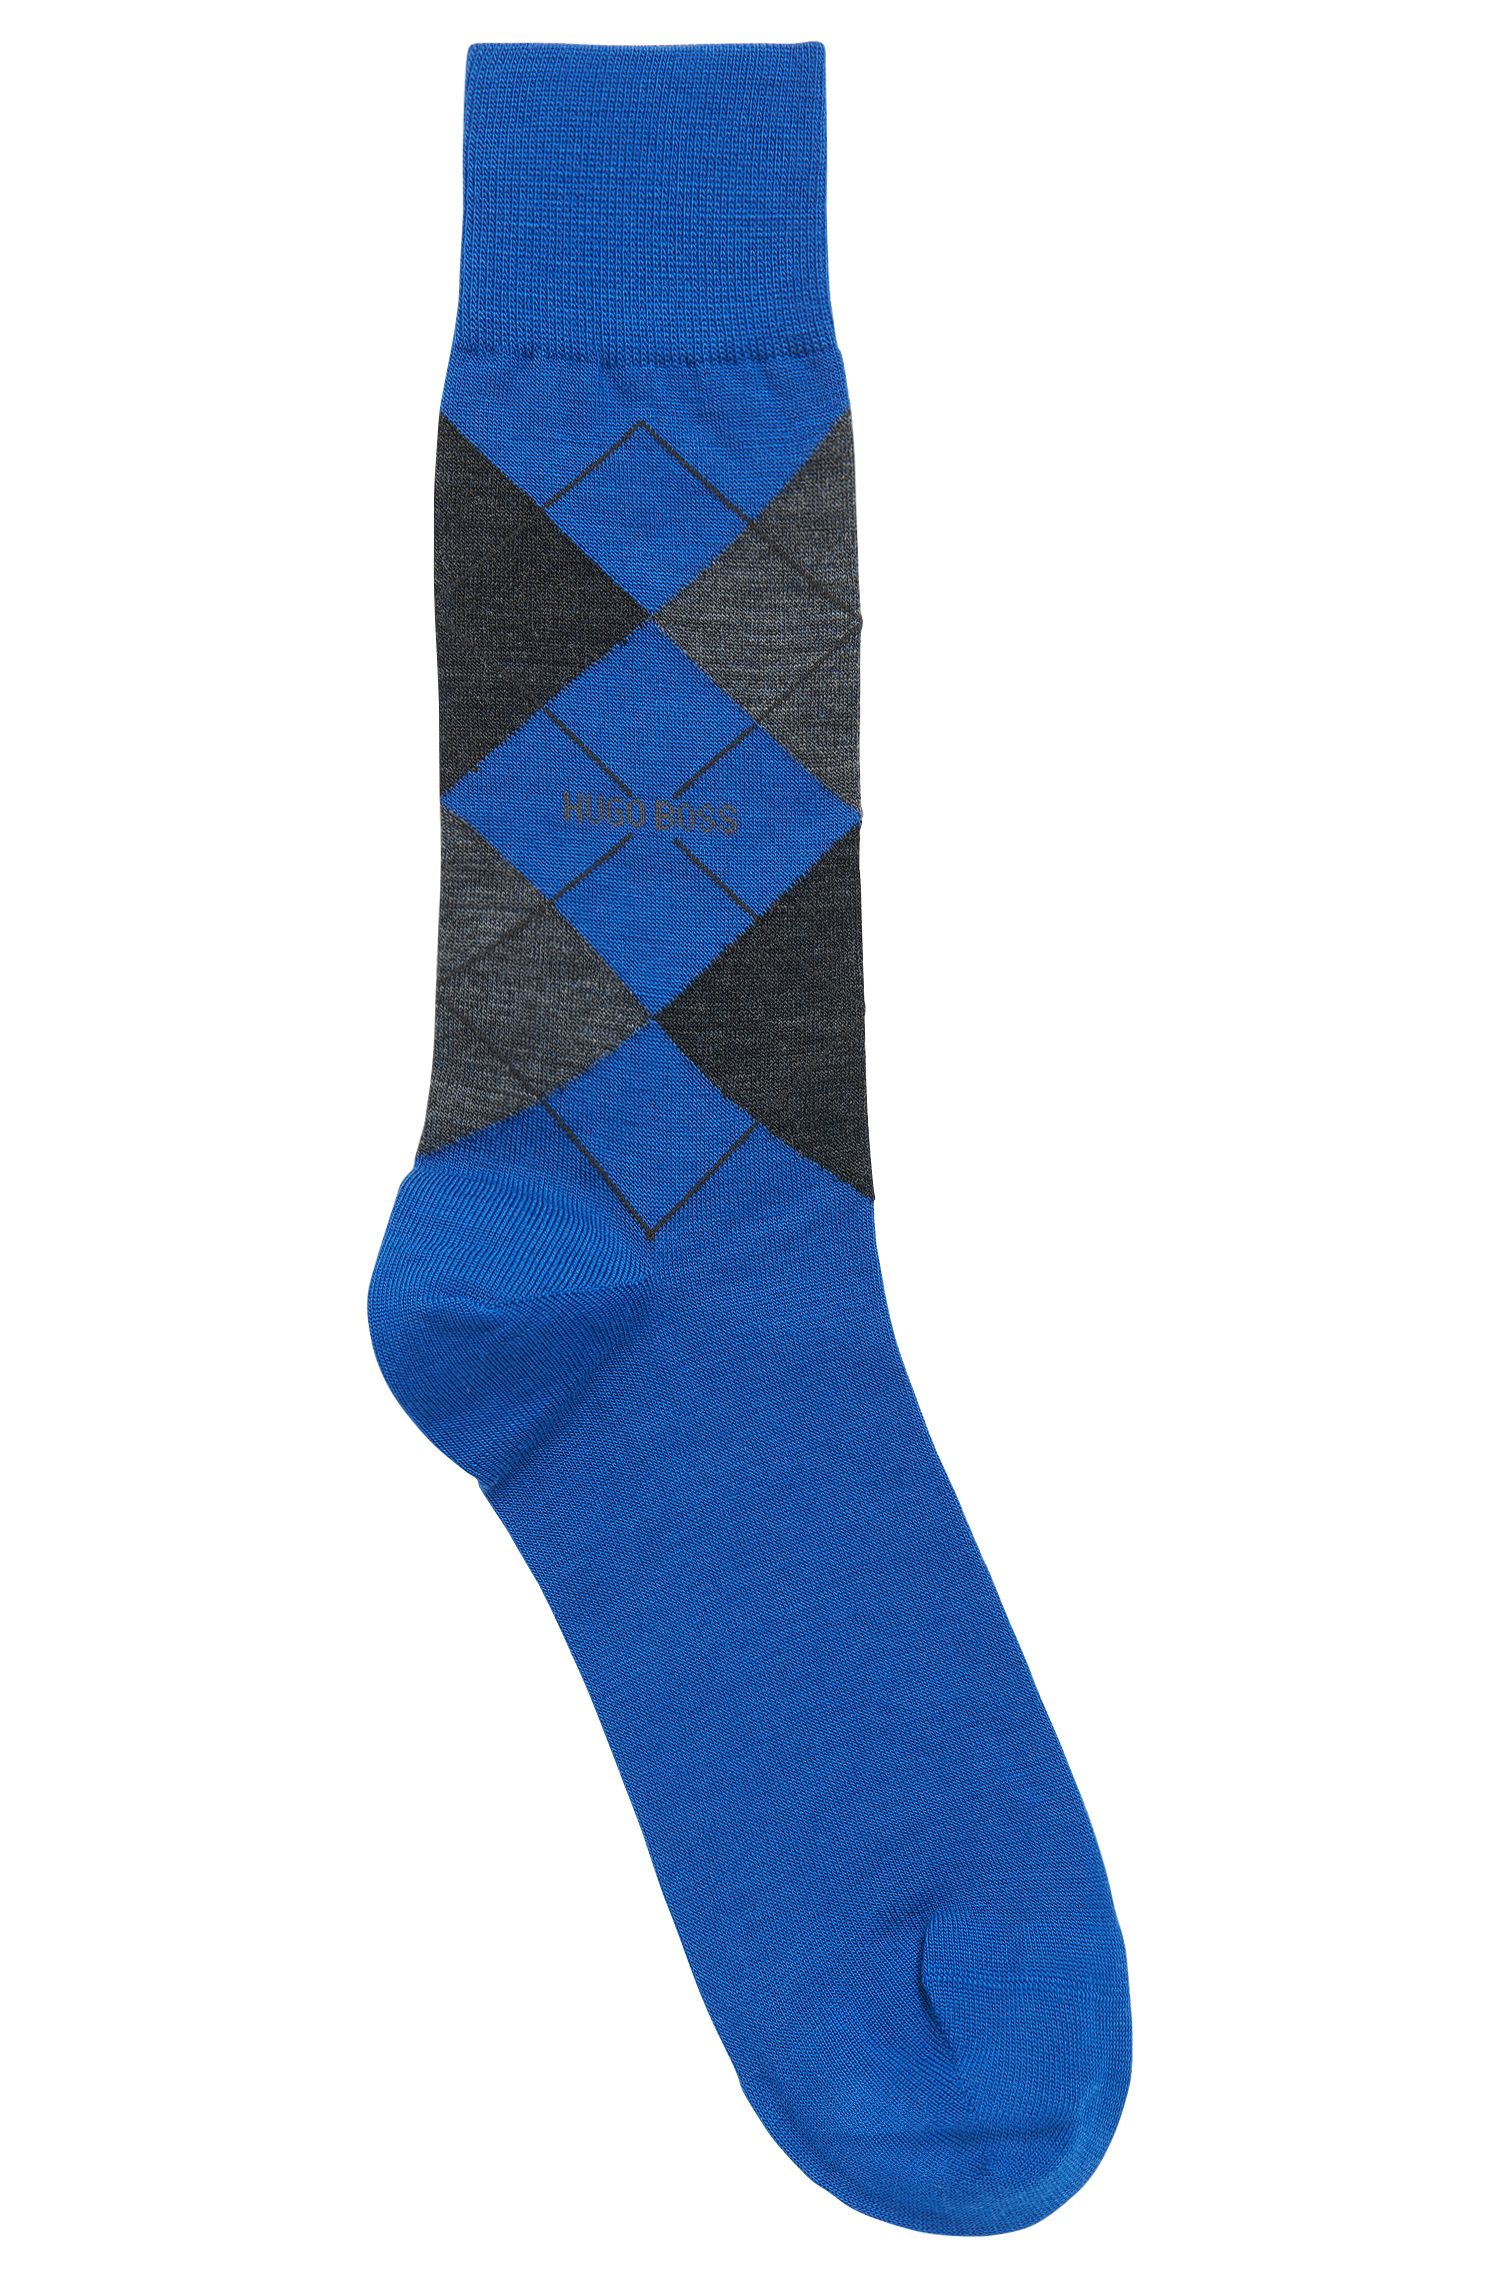 Regular-length socks in climate-regulating fabric